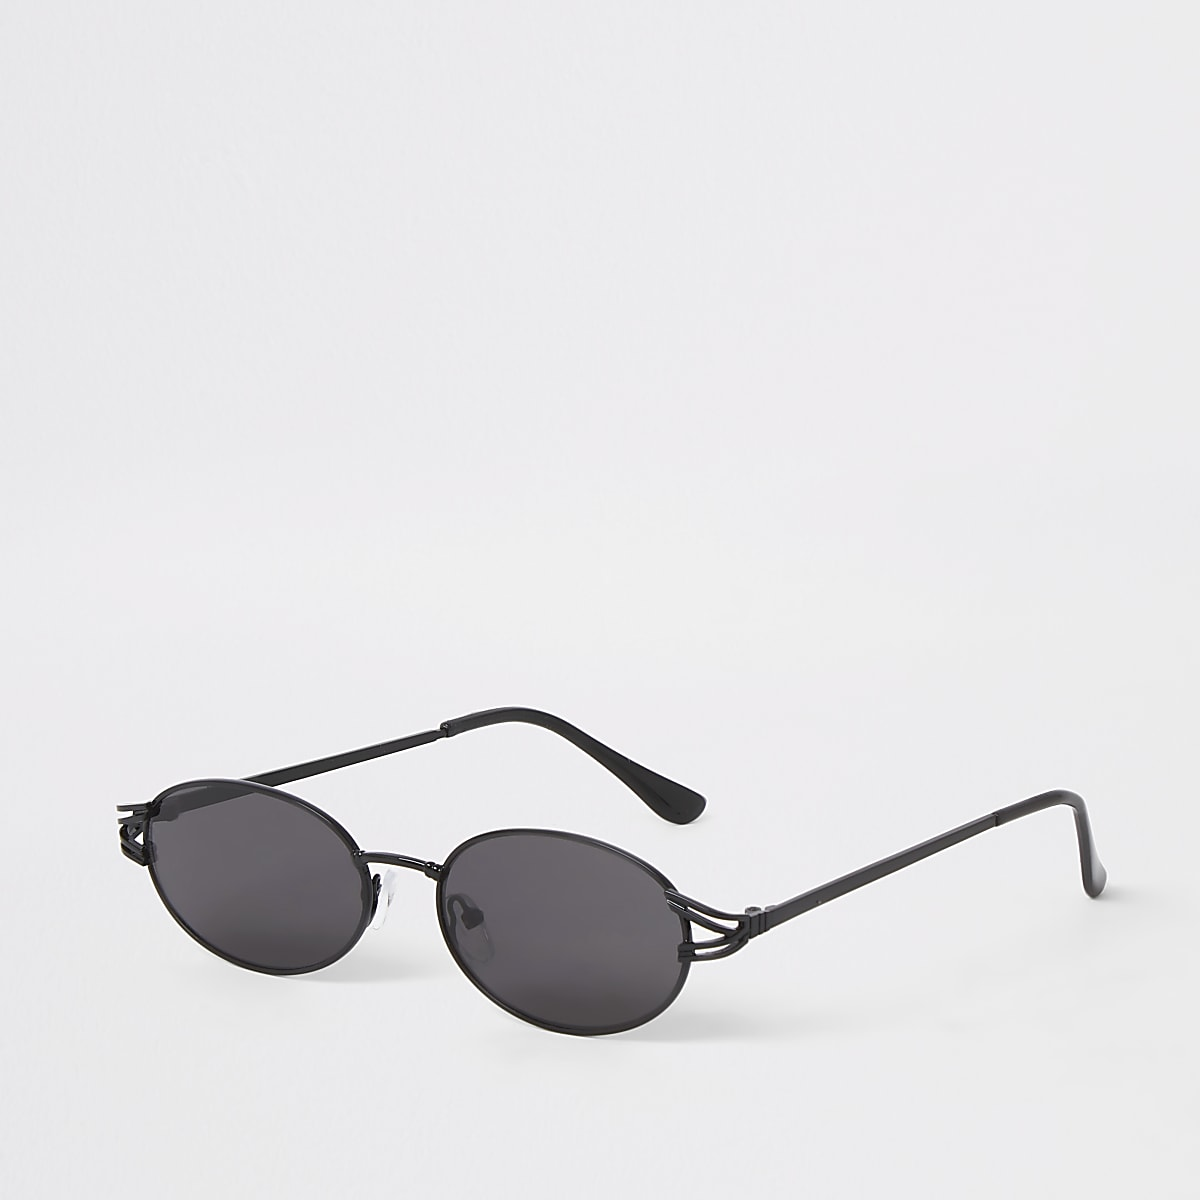 mens oval sunglasses